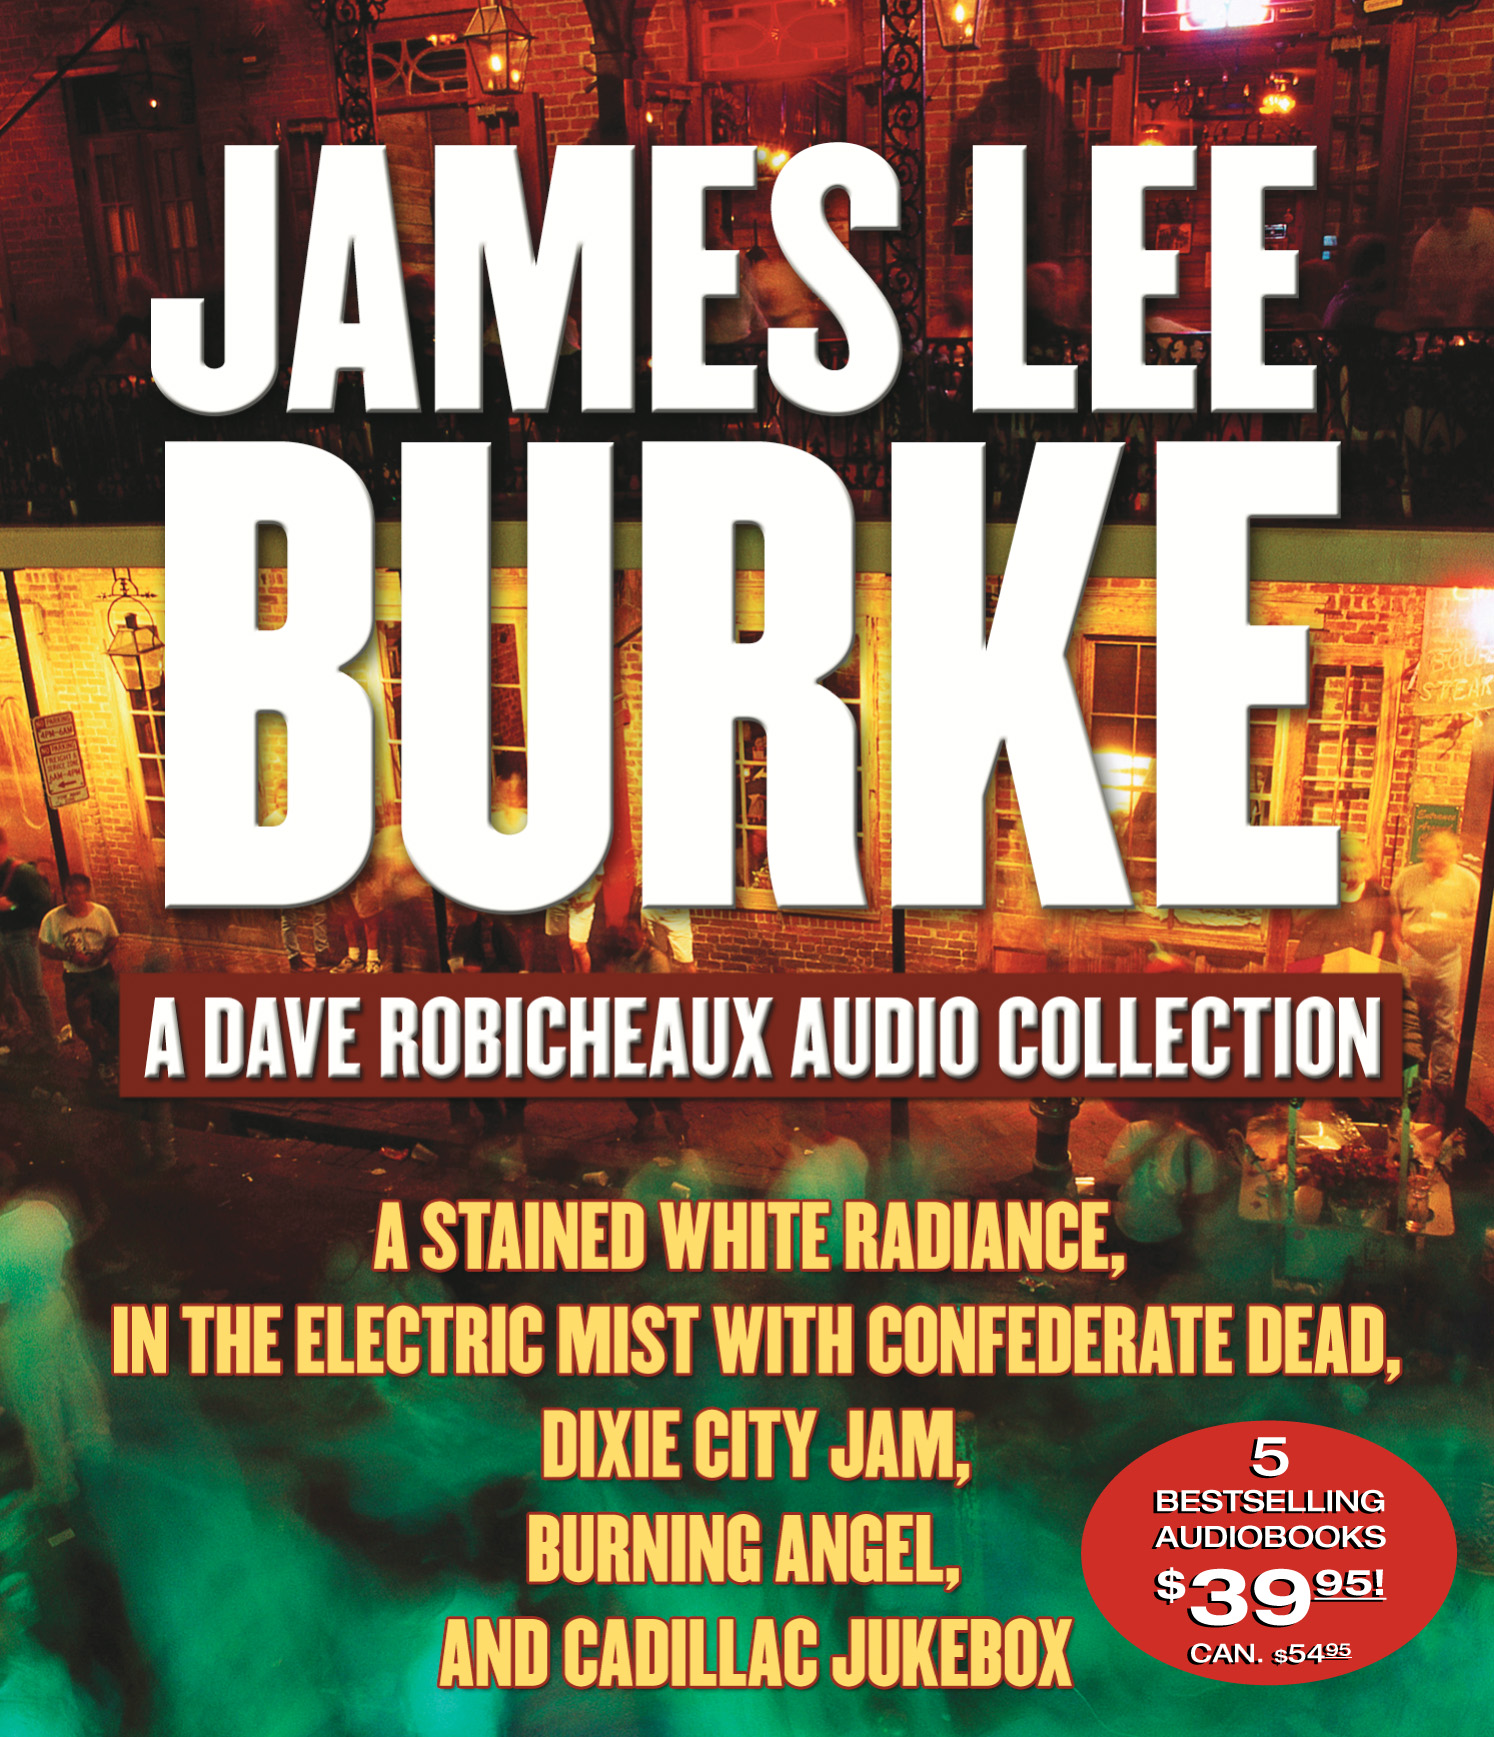 Book Cover Image (jpg): A Dave Robicheaux Audio Collection